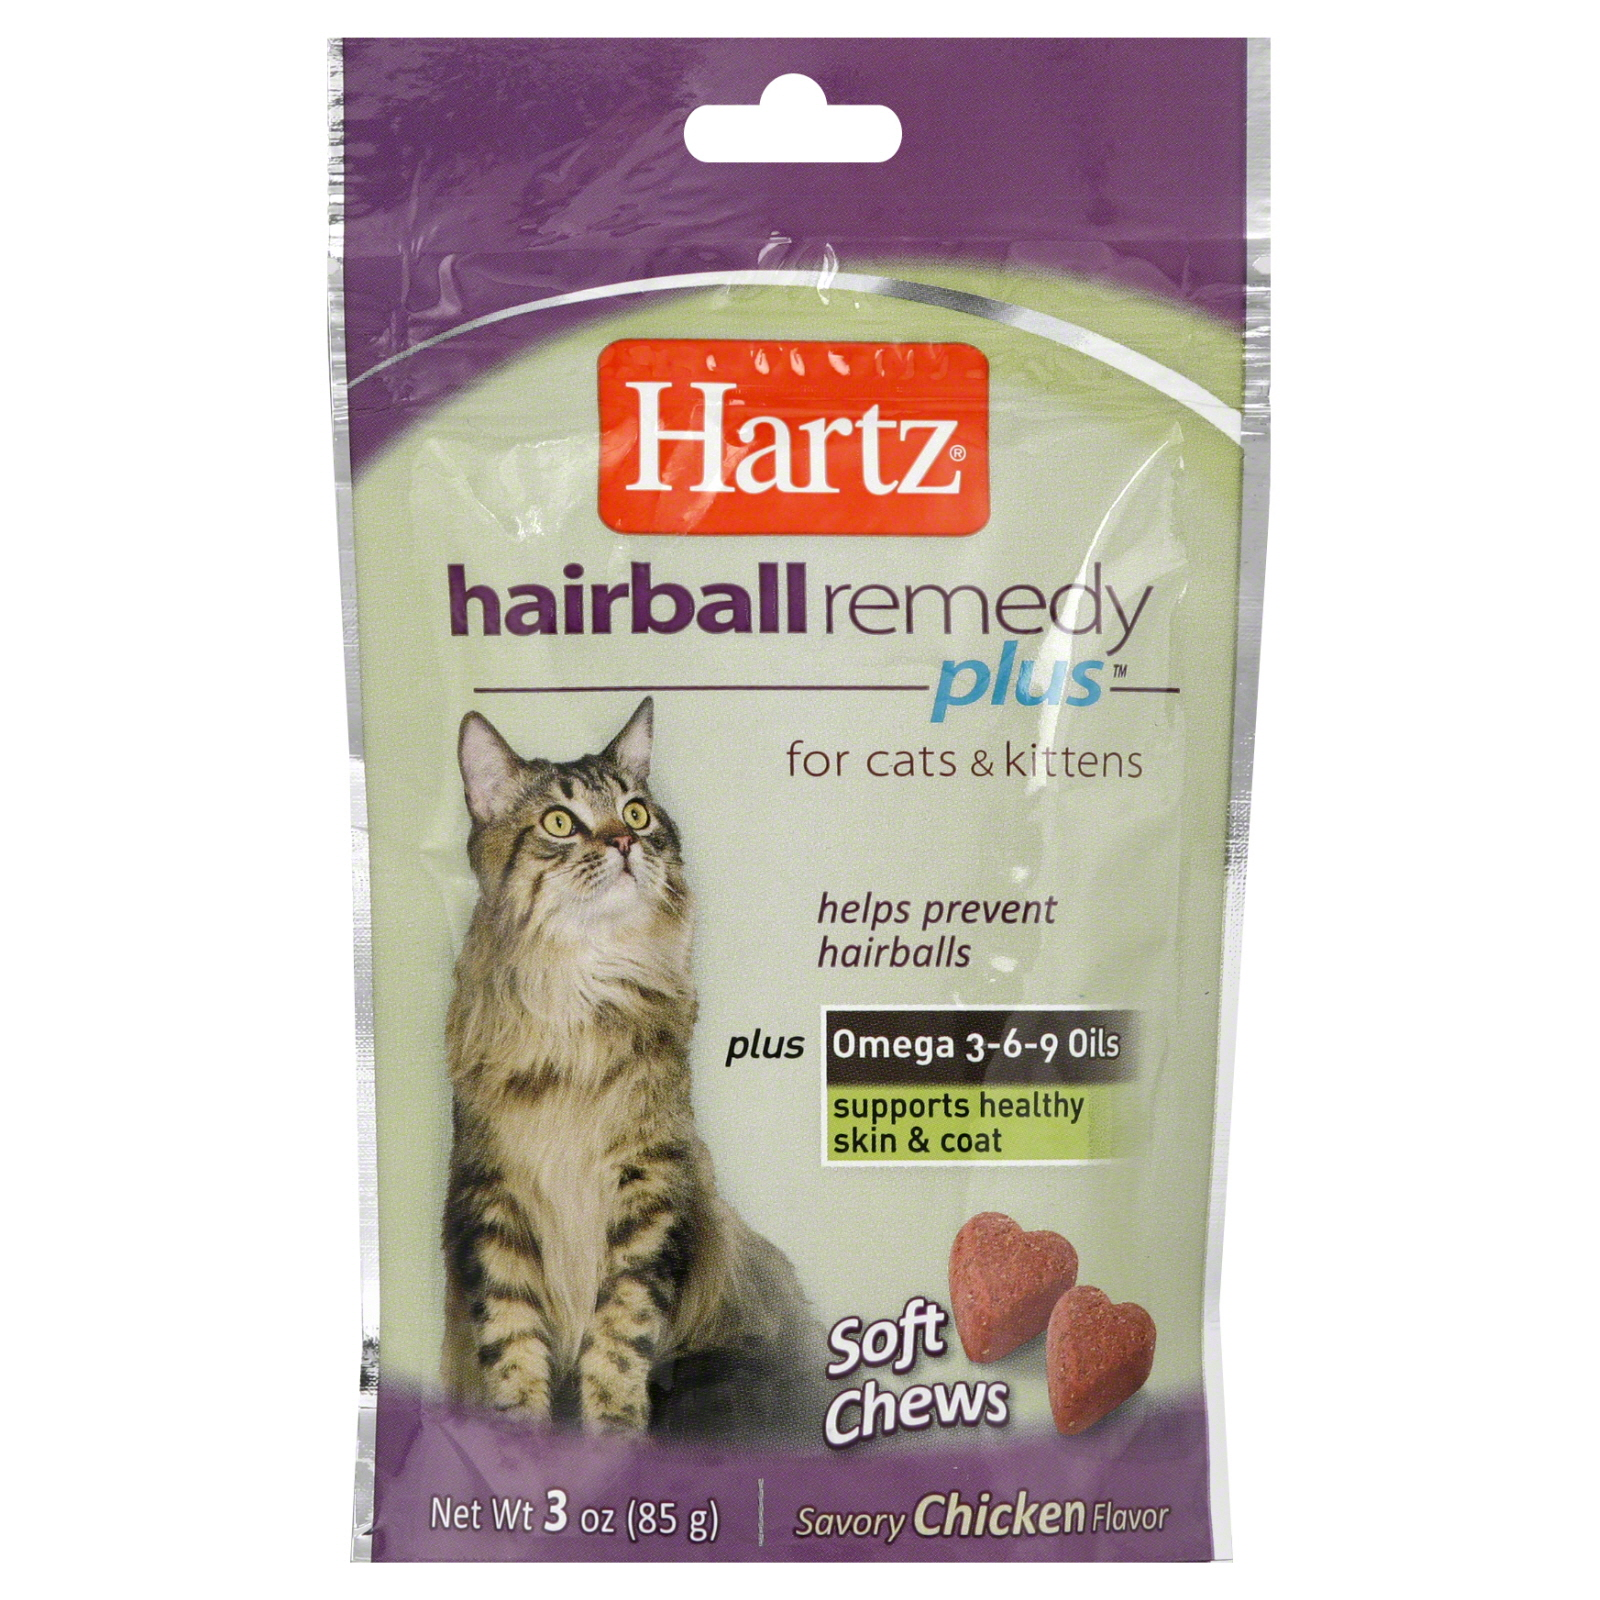 Hairball Remedy Plus Soft Chews, for Cats &